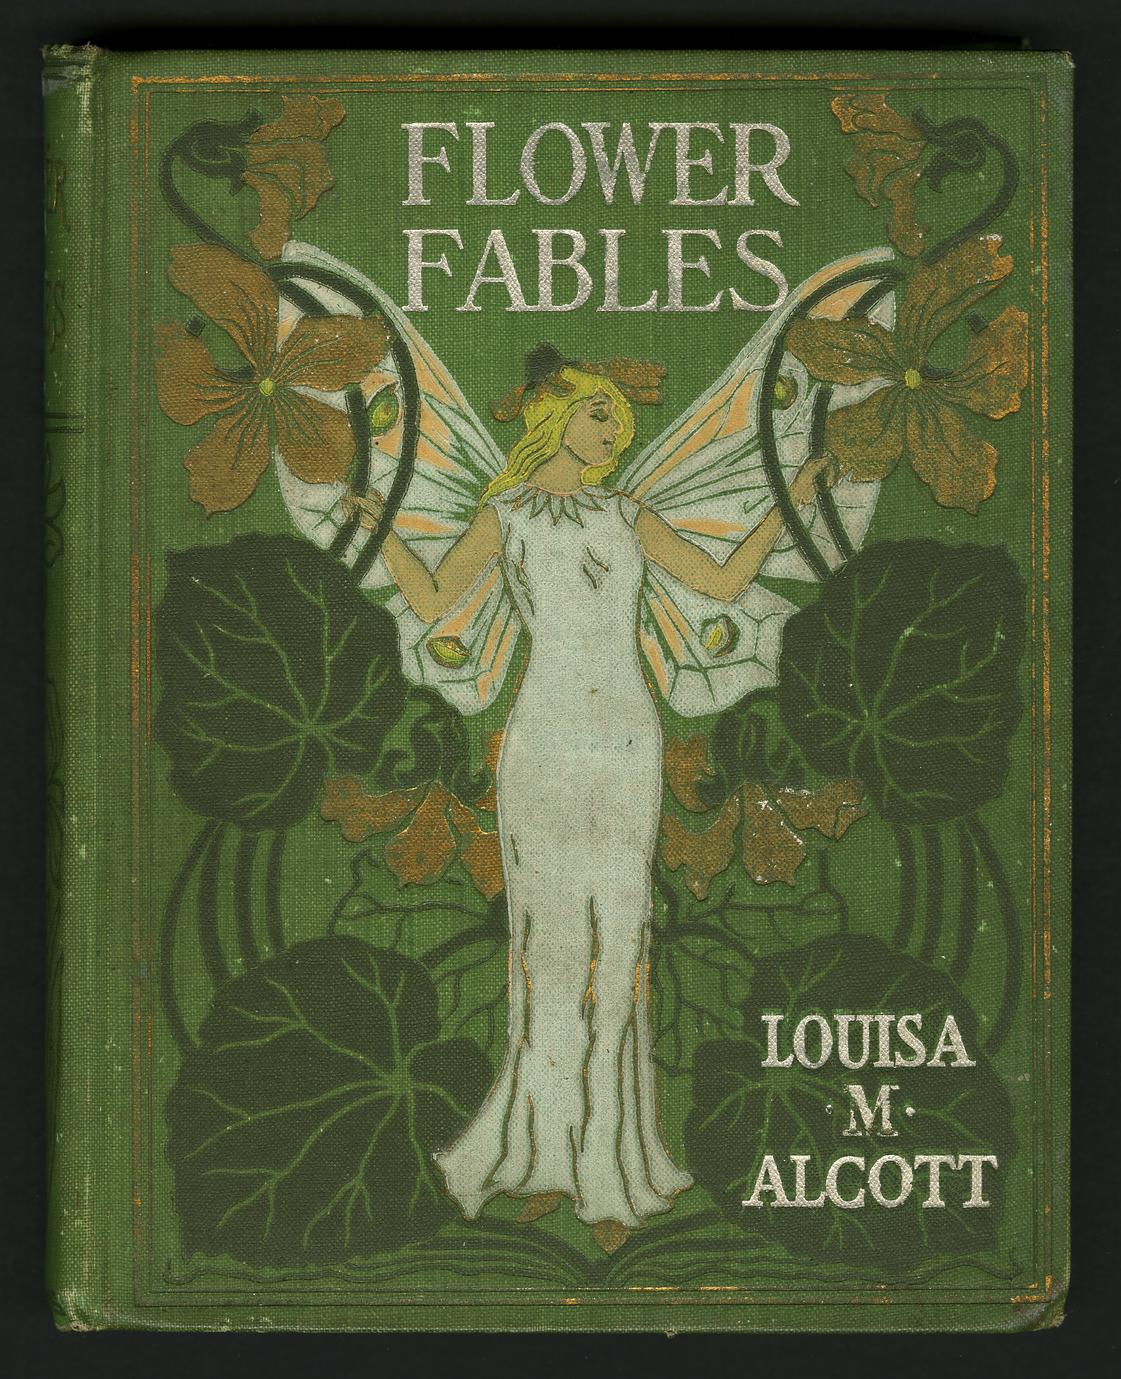 Flower fables (1 of 3)